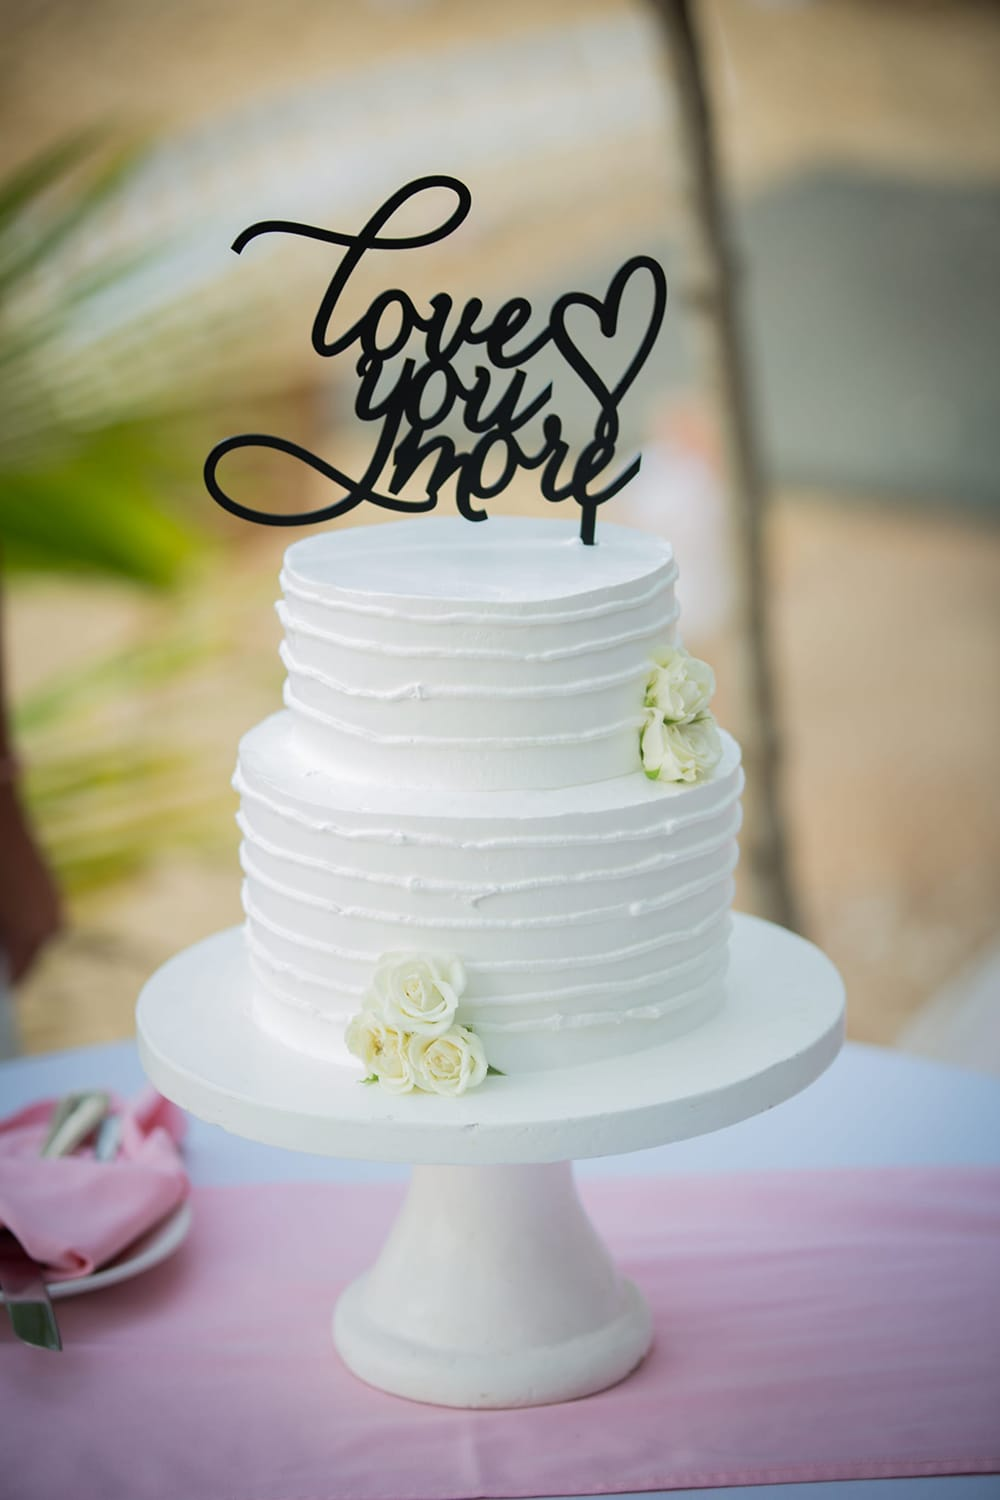 Traditional white wedding cake with cake topper by Adventure Weddings